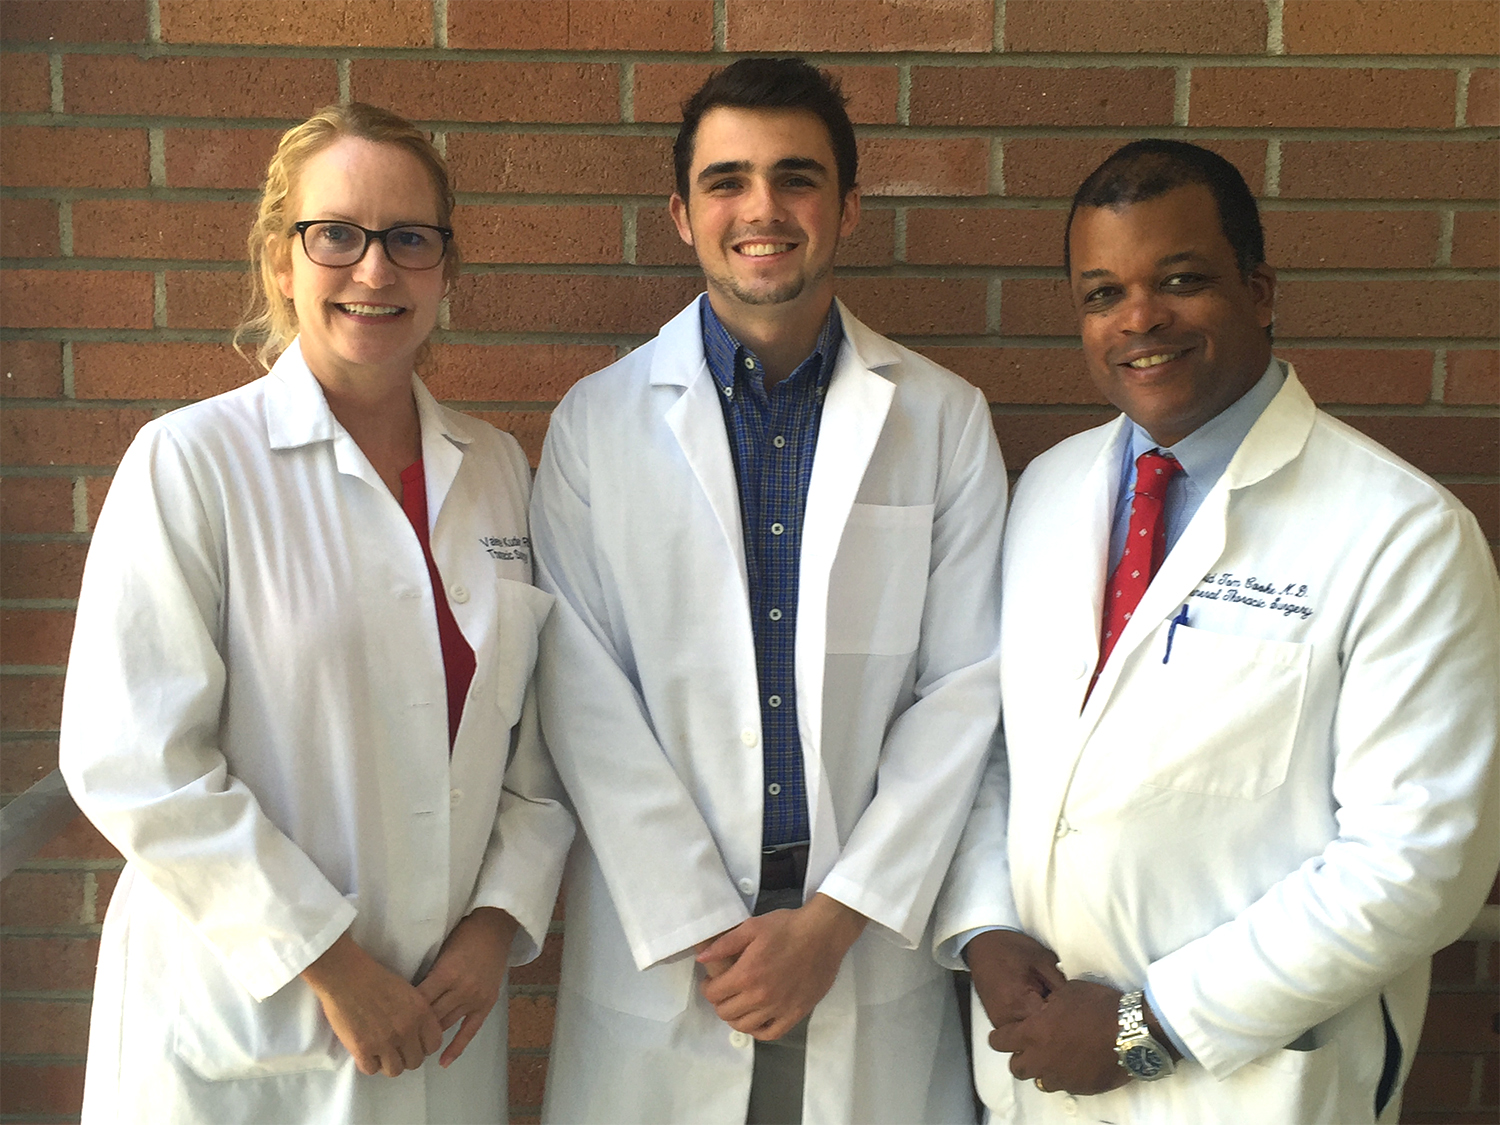 Connor Grant (middle) stands with a couple of his mentors from UC Davis Health.